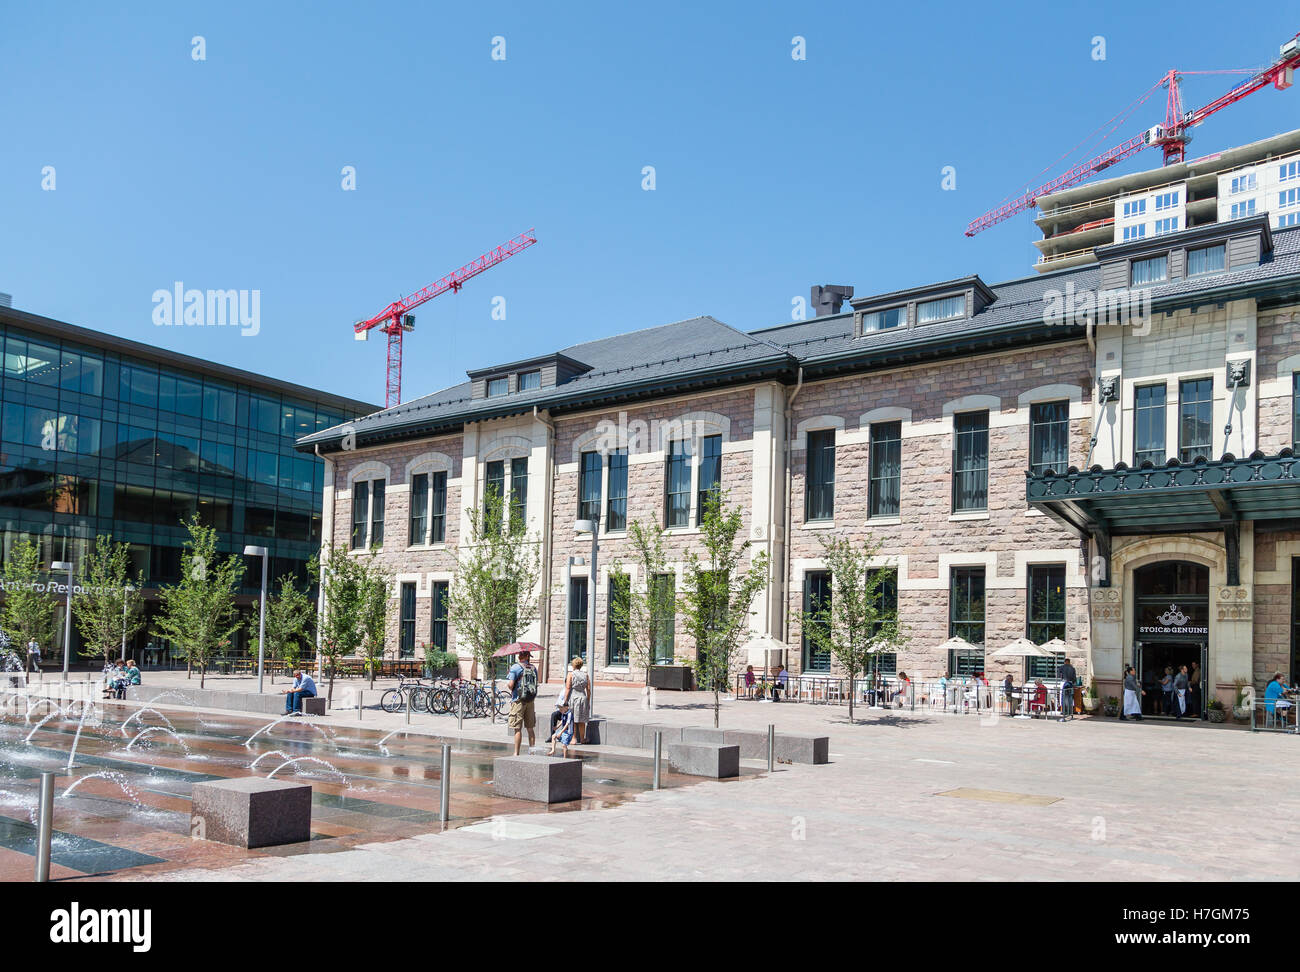 Fountain and Patio of Stoic and Genuine in Denver - Stock Image